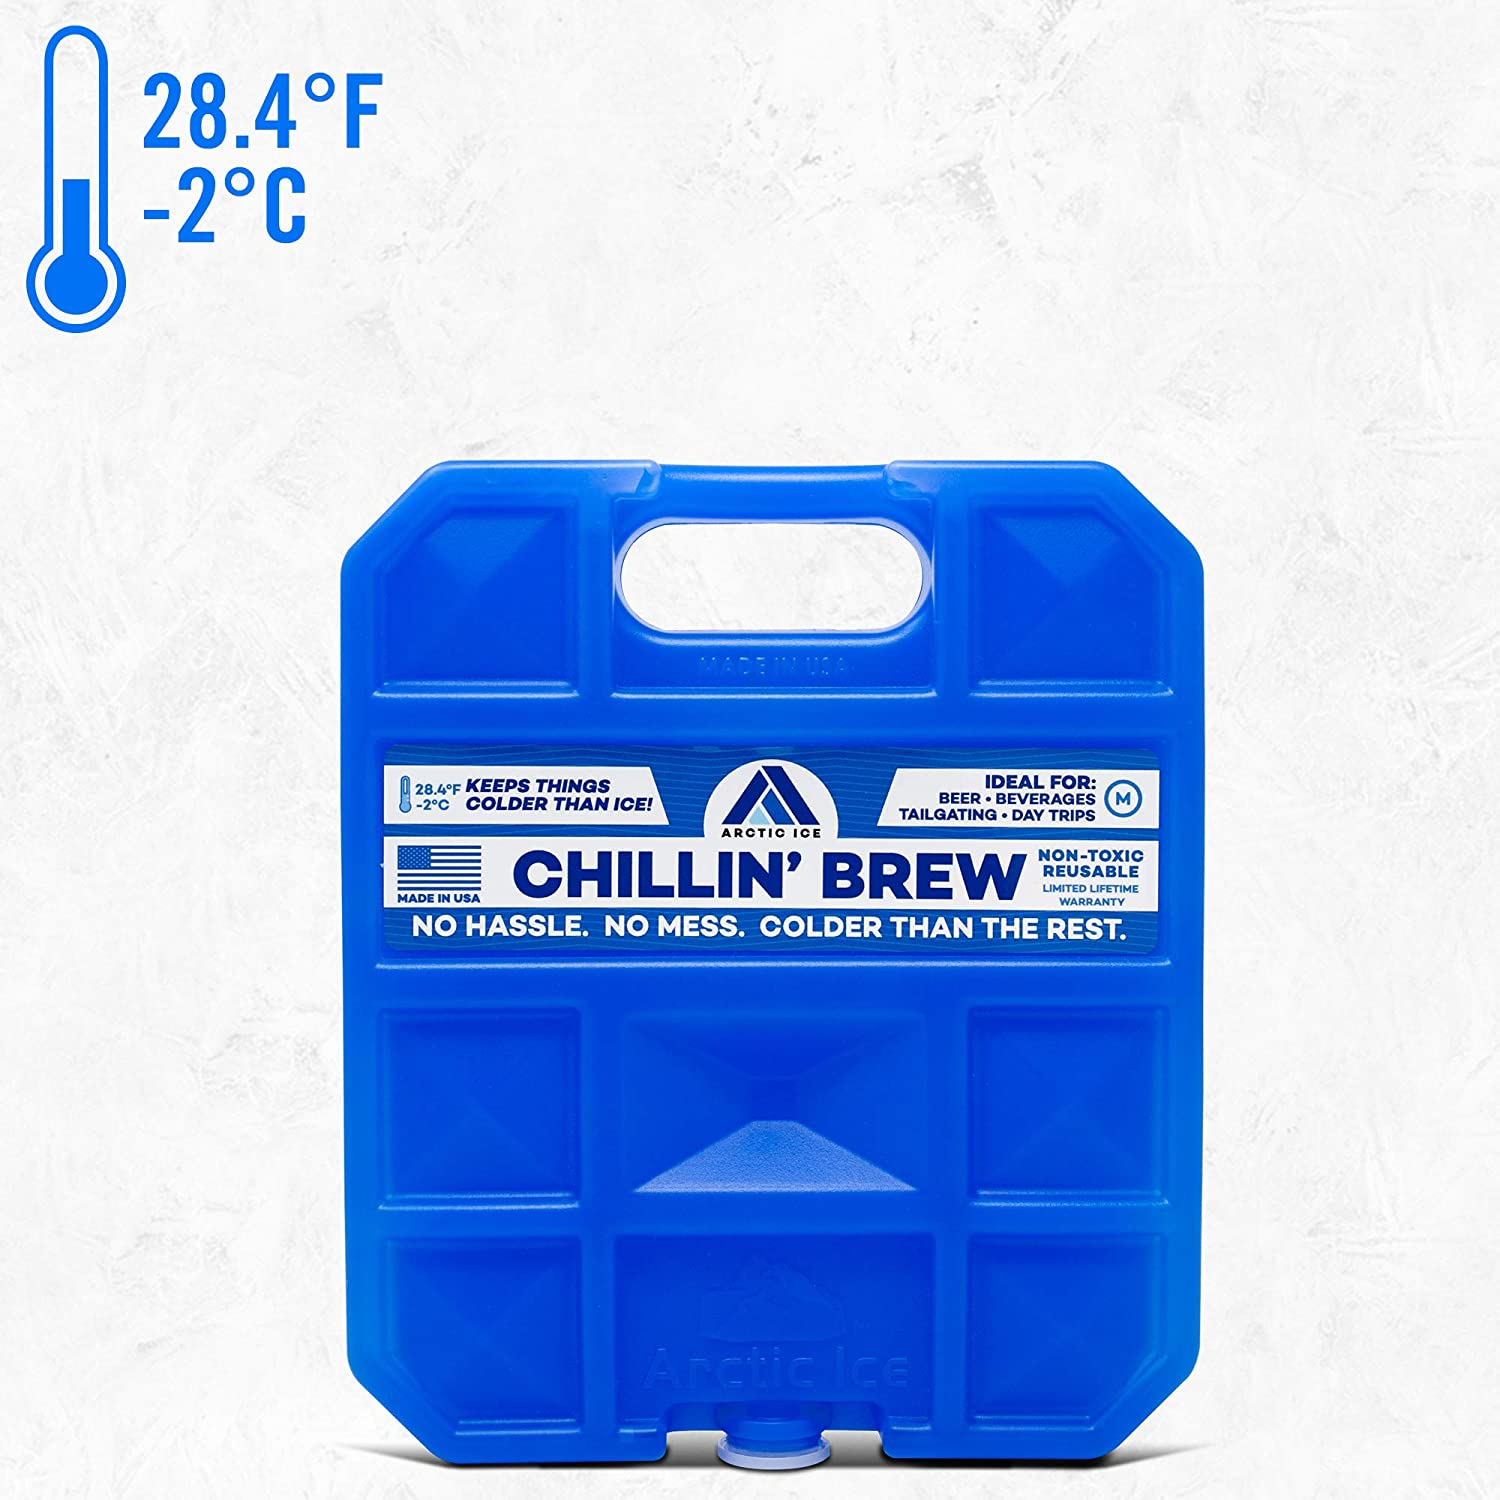 Long Lasting Ice Pack for Coolers, Camping, Fishing and More, Medium Reusable Ice Pack, Chillin' Brew Series by Arctic Ice